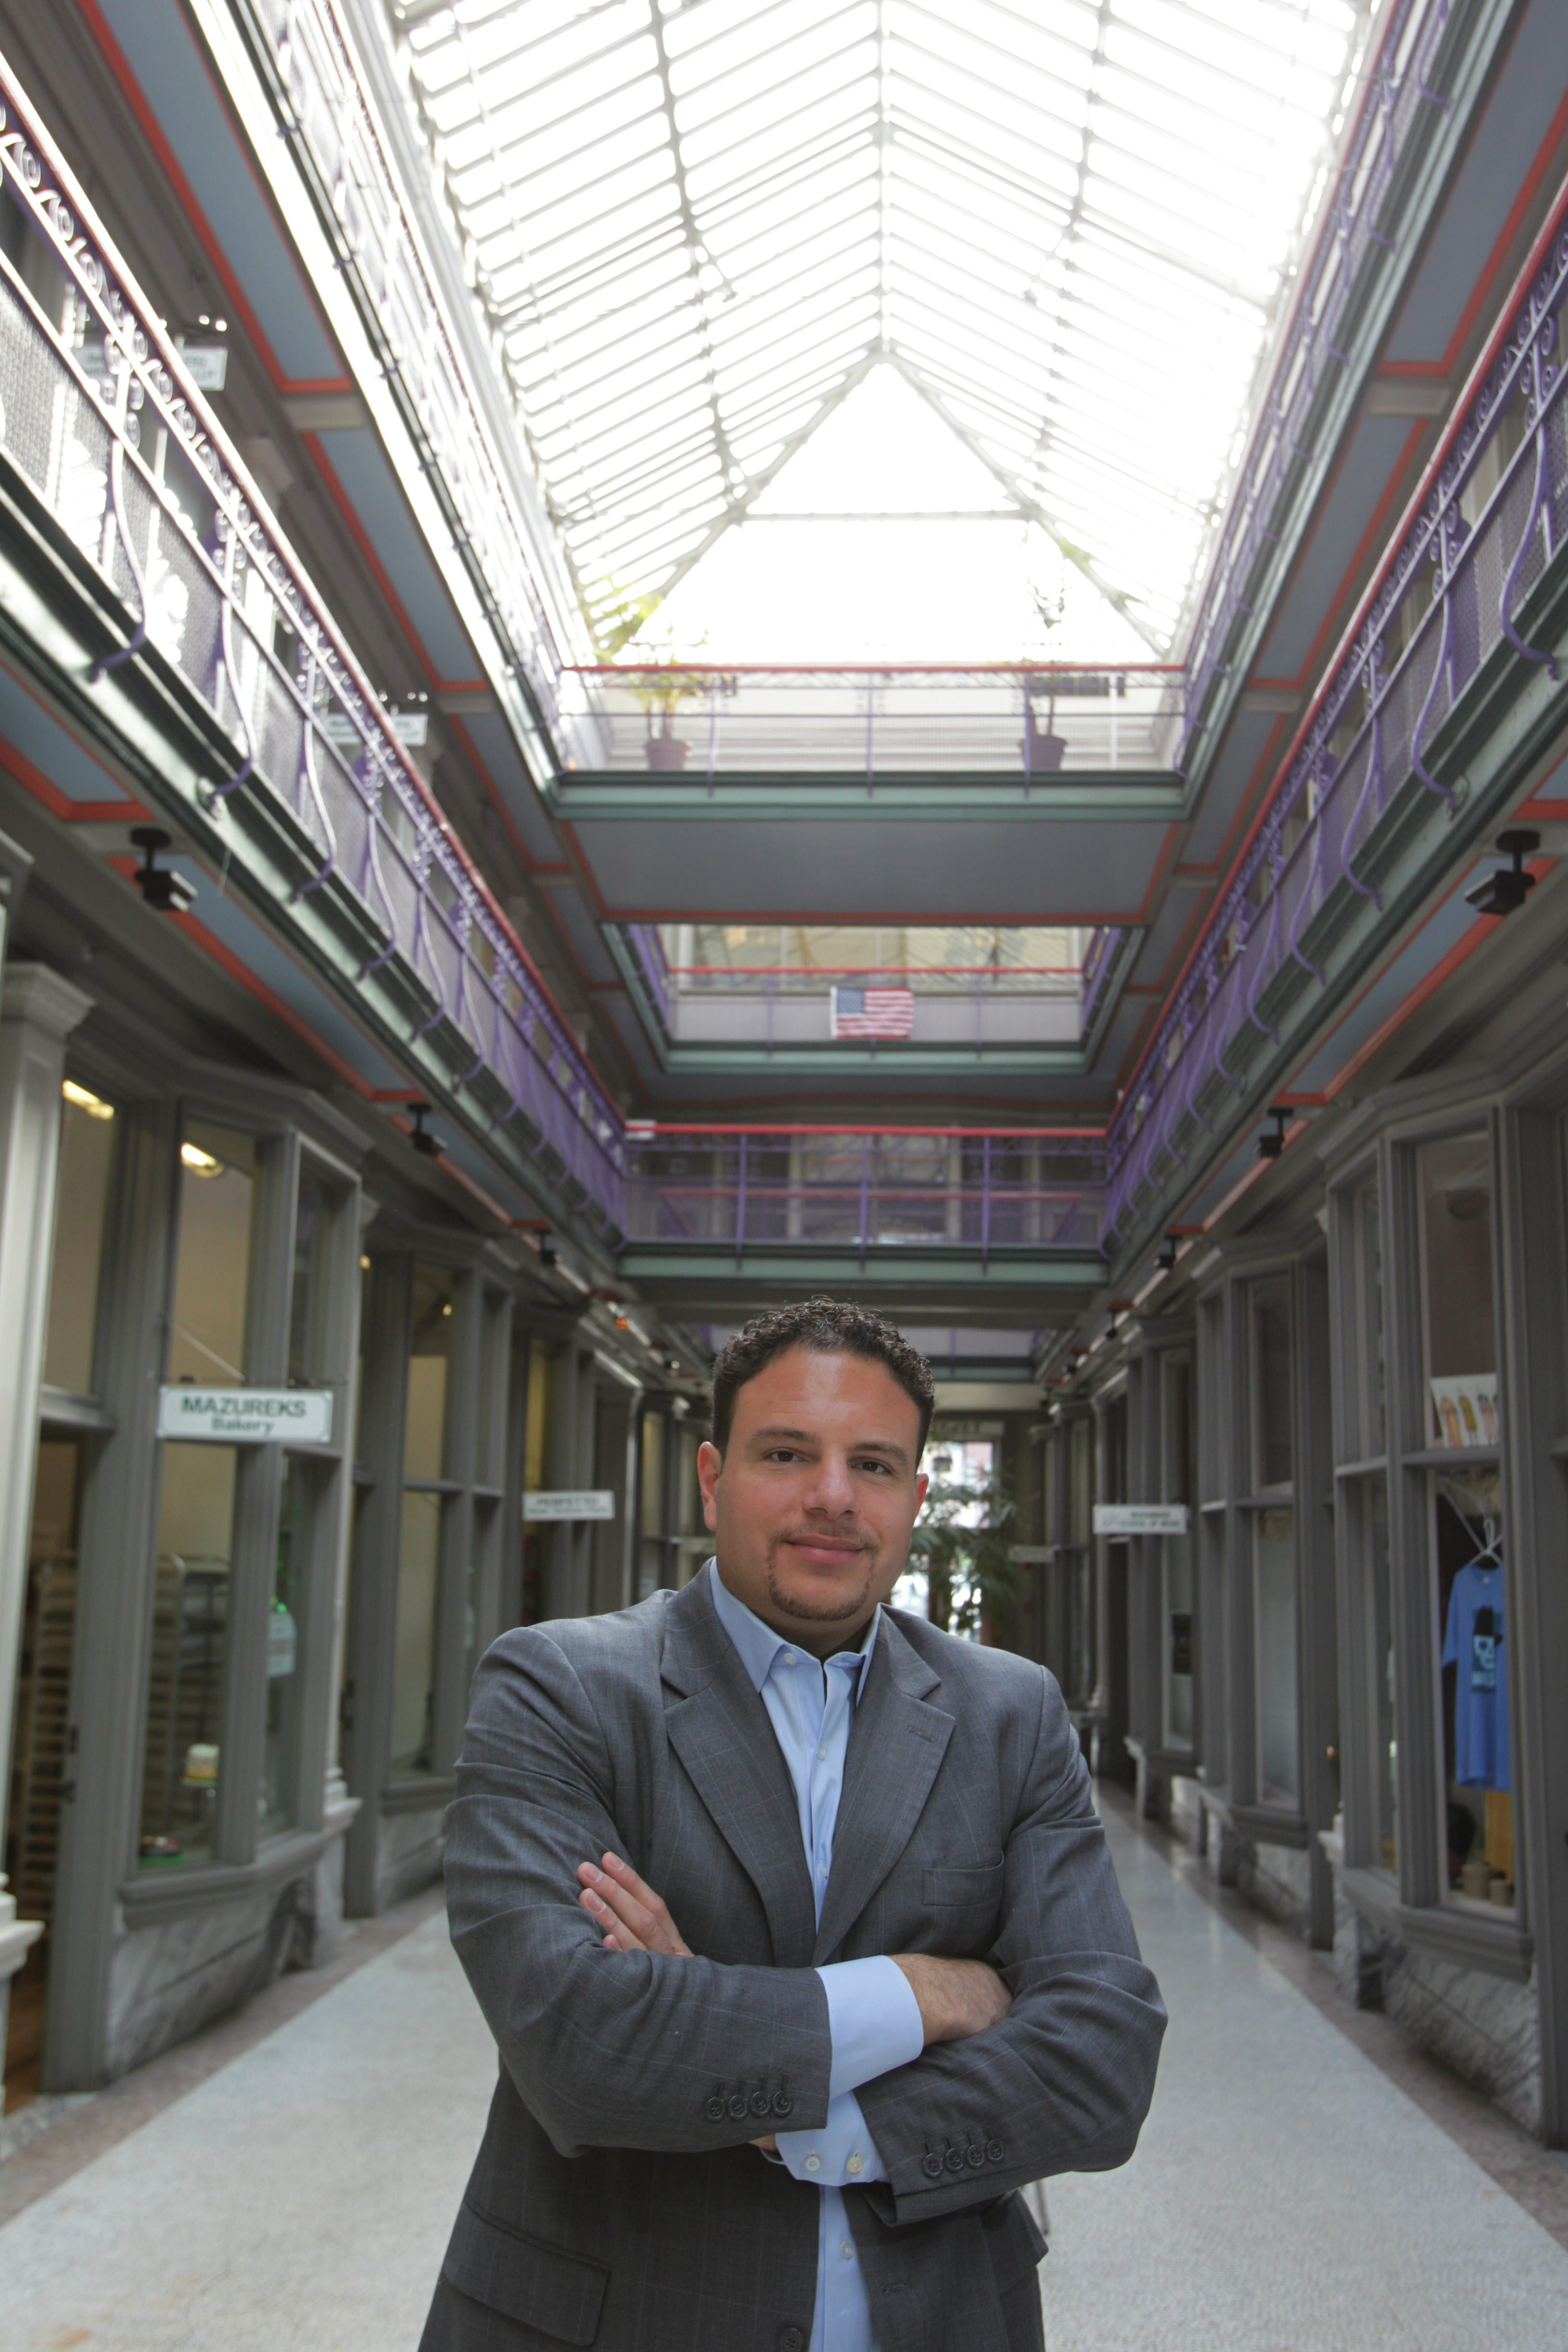 Up-and-coming developer Nick Sinatra is buying the Market Arcade for his firm's new headquarter and is redeveloping the Fenton Village apartments on Main St, among other projects. Sinatra was photographed at the Market Arcade, Monday, March 24, 2014.  (Sharon Cantillon/Buffalo News)